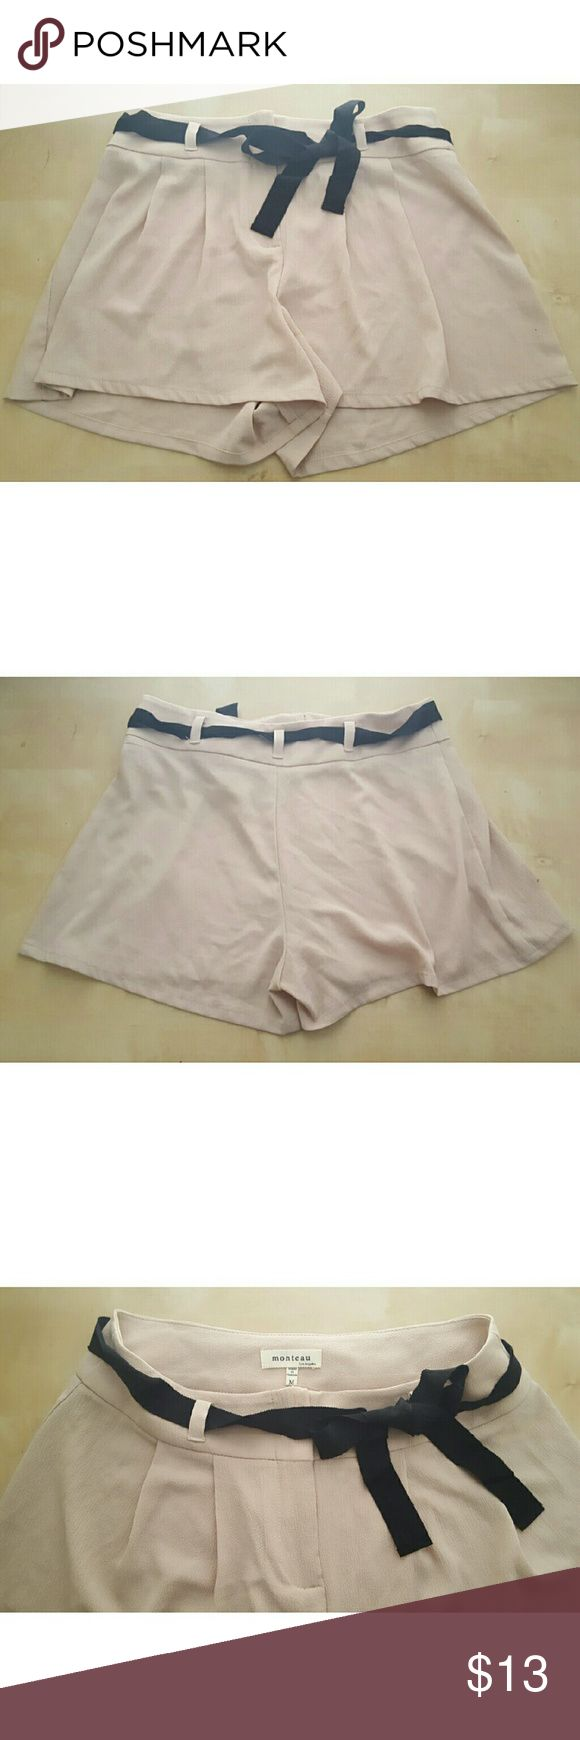 High-Waisted Beige Shorts with Belt These light and loose beige shorts are the perfect neutral base for any outfit. They are high-waisted and feature a black 1inch thick belt. Zipper in front. Lightly worn, Great condition! 95% Polyester and 5% Spandex Monteau Shorts